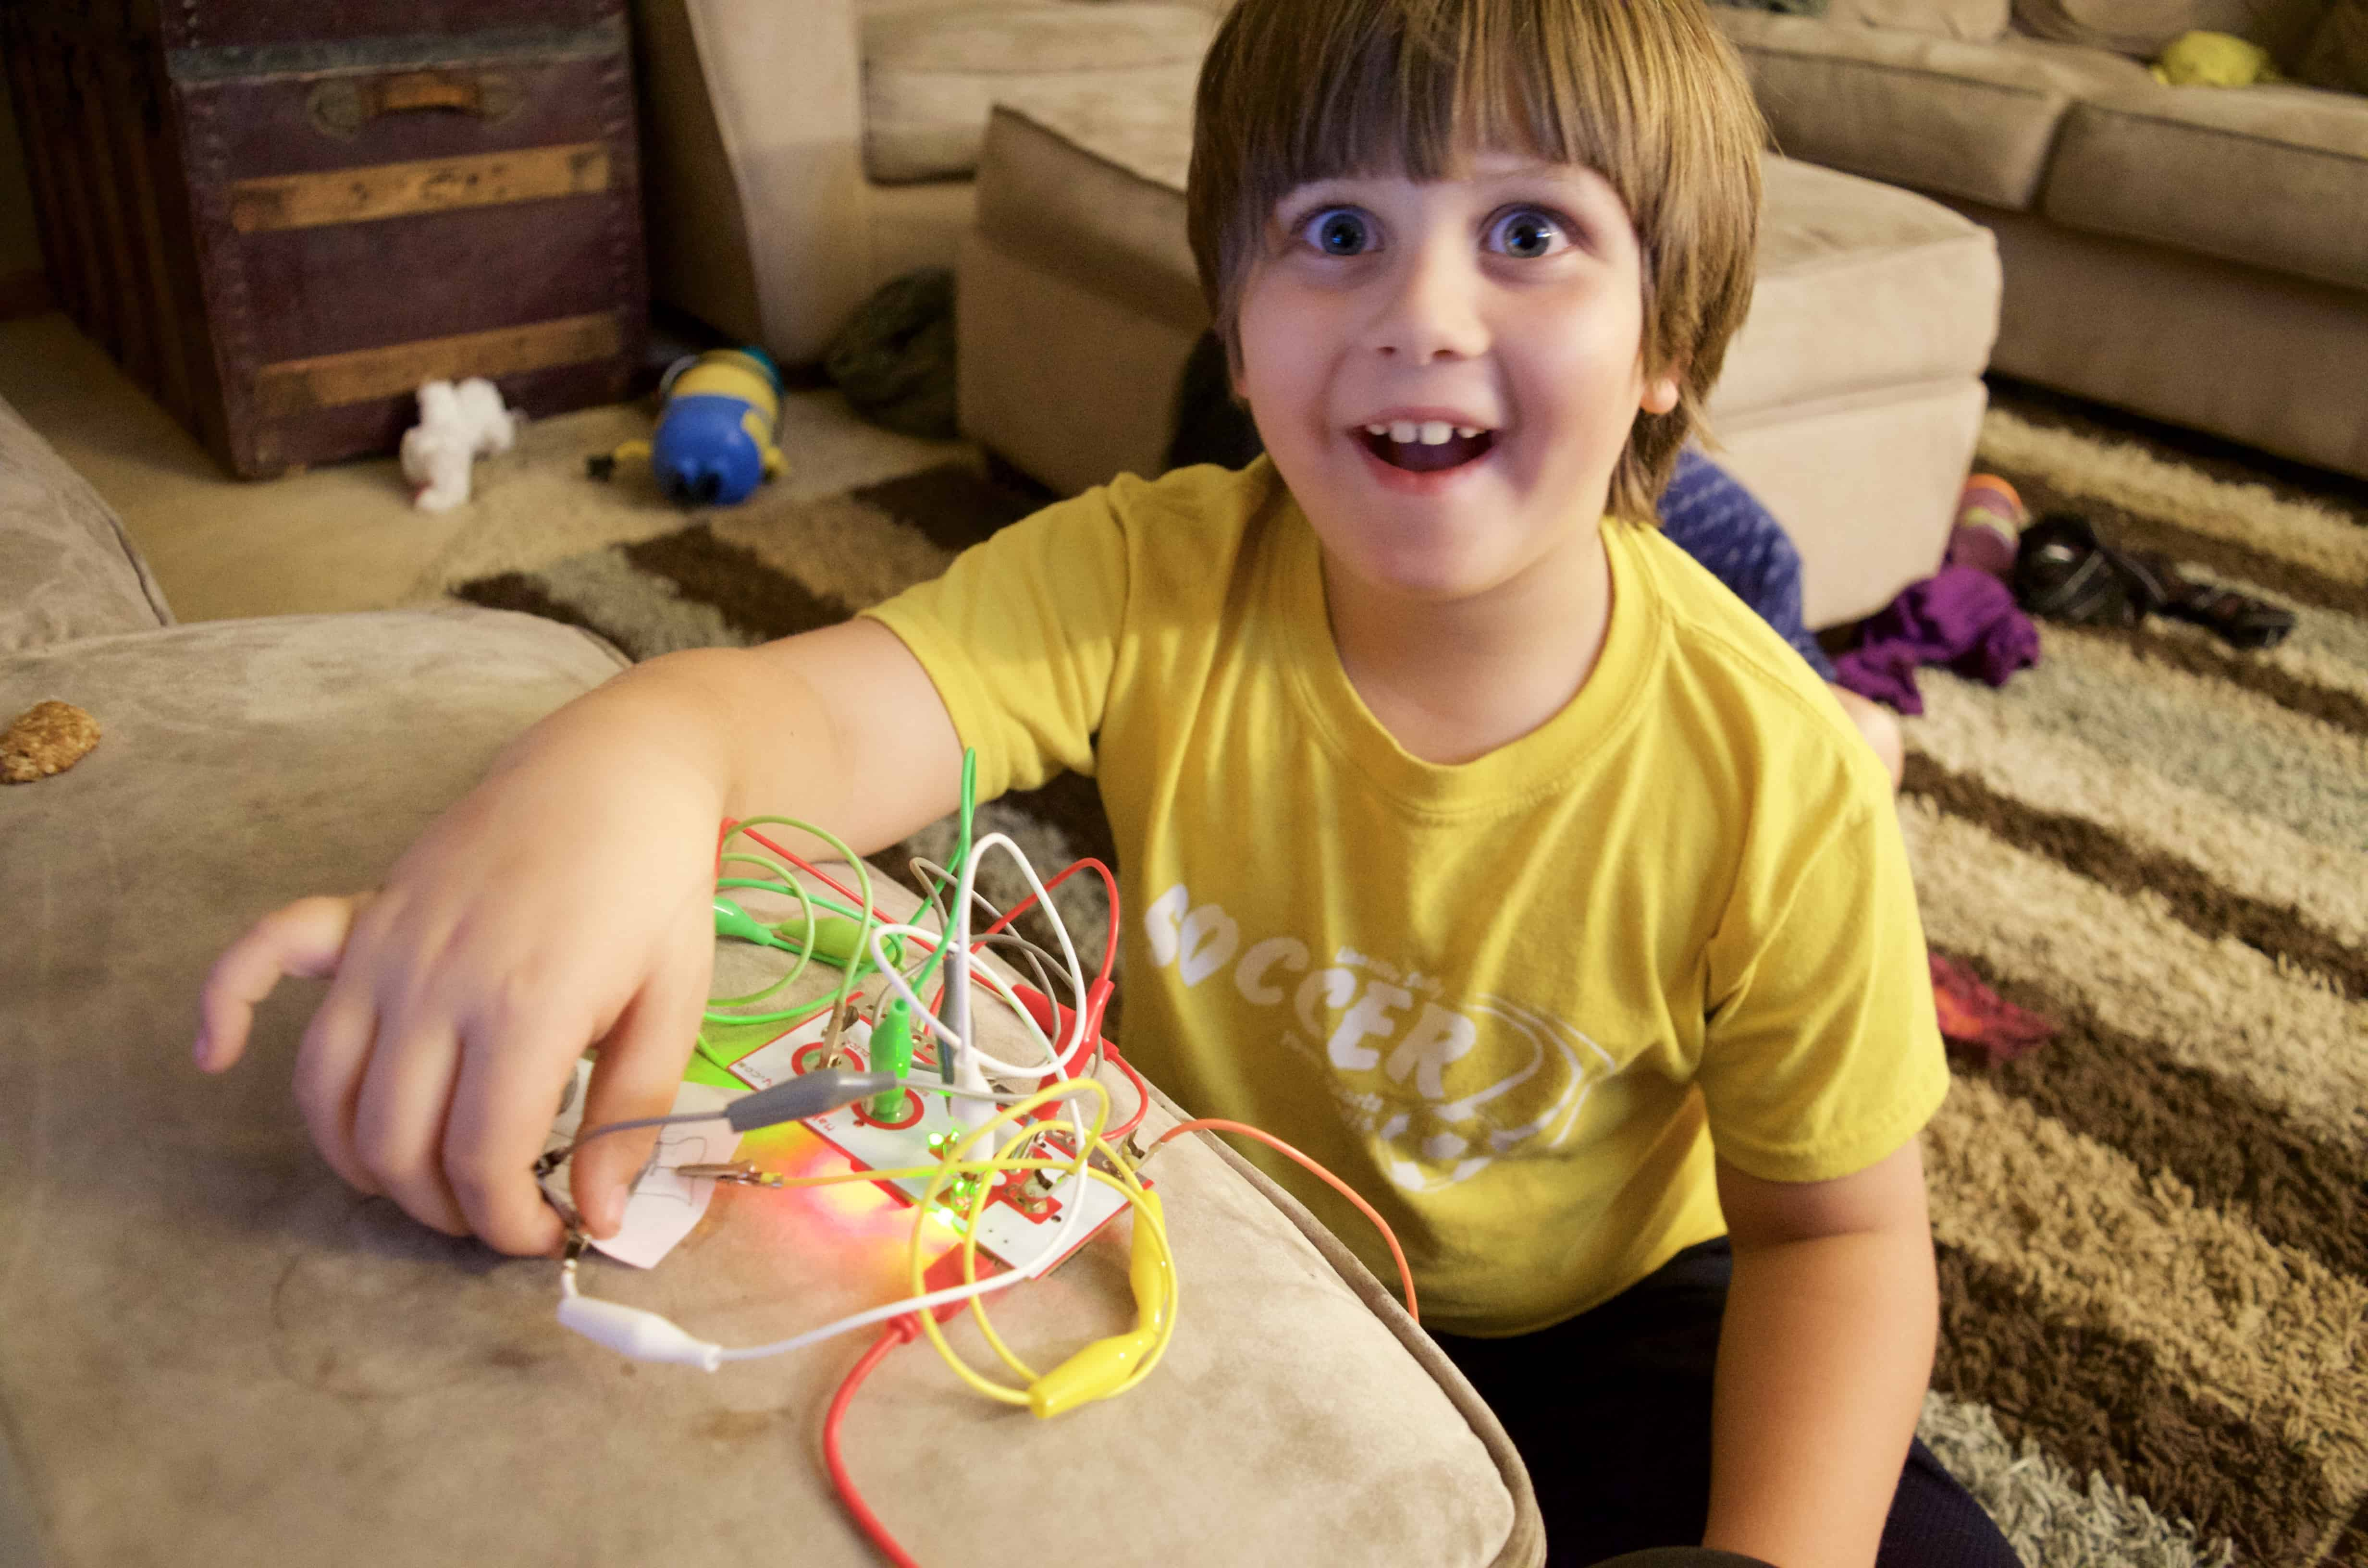 Makey Makey STEM Kid's Engineering Kit Review